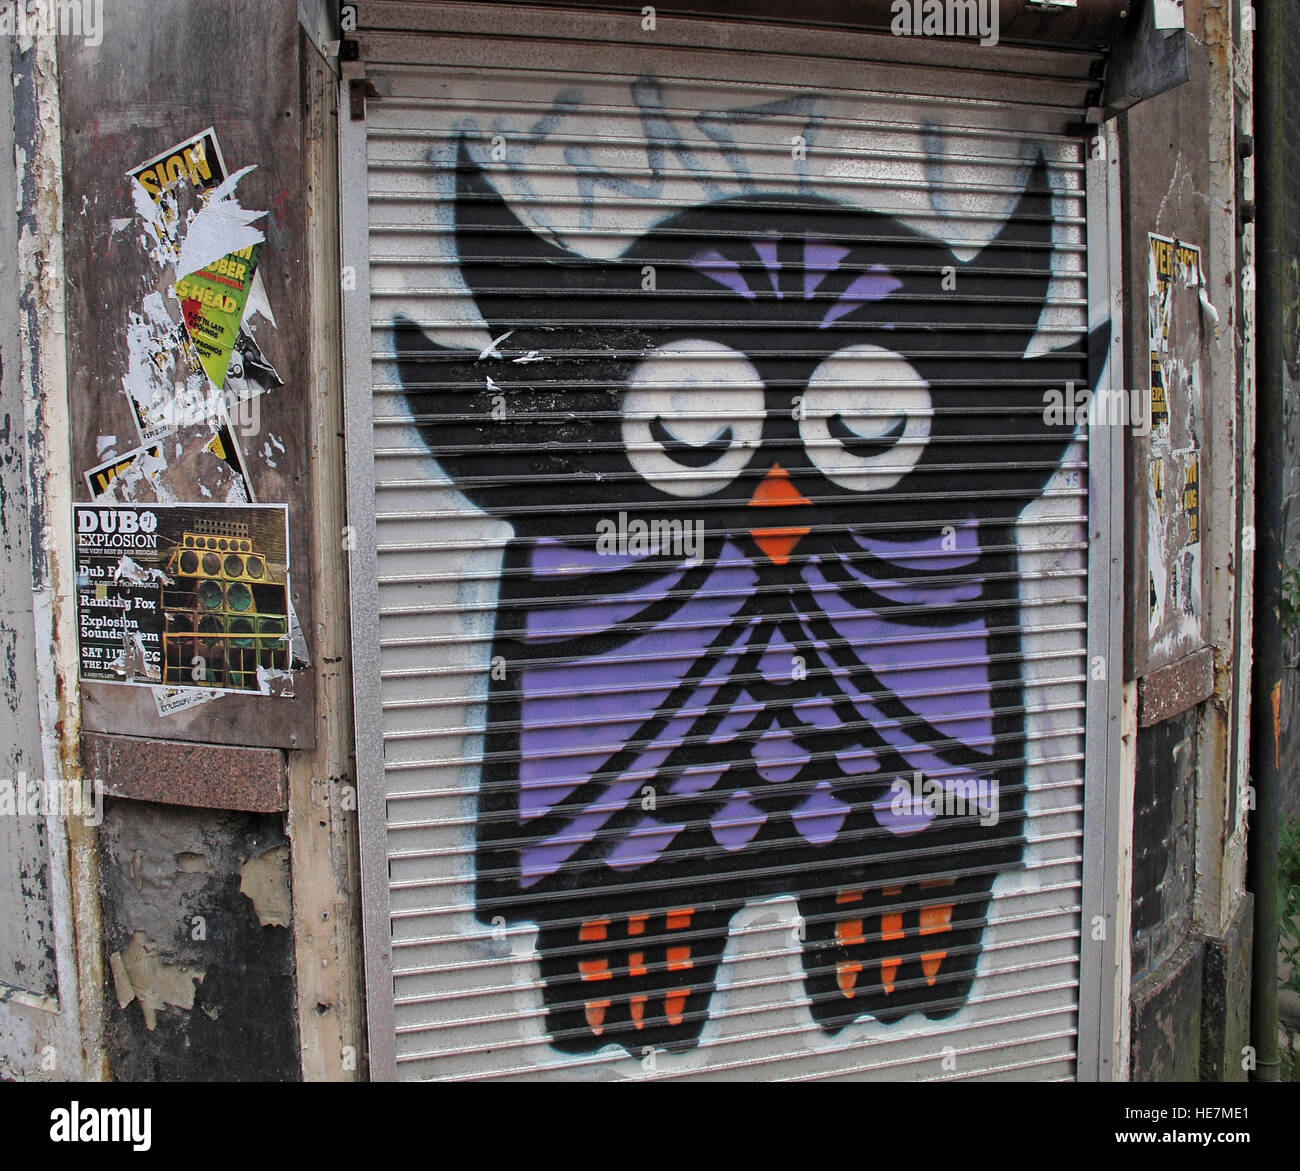 Belfast Garfield St Owl       City Centre, Northern Ireland, UK - Stock Image